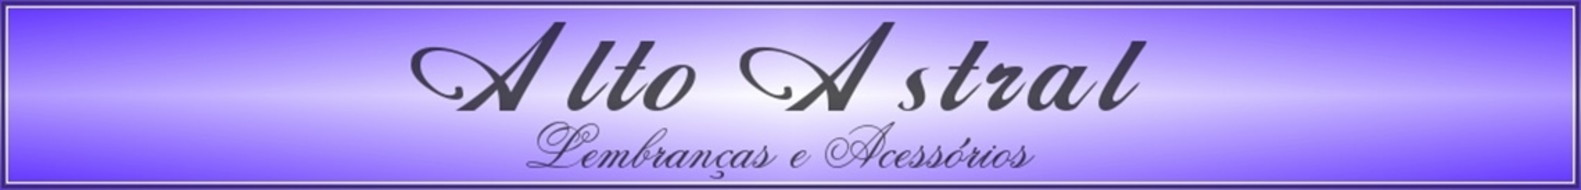 ***Alto Astral acessrios e lembrancinhas exclusiuvas***